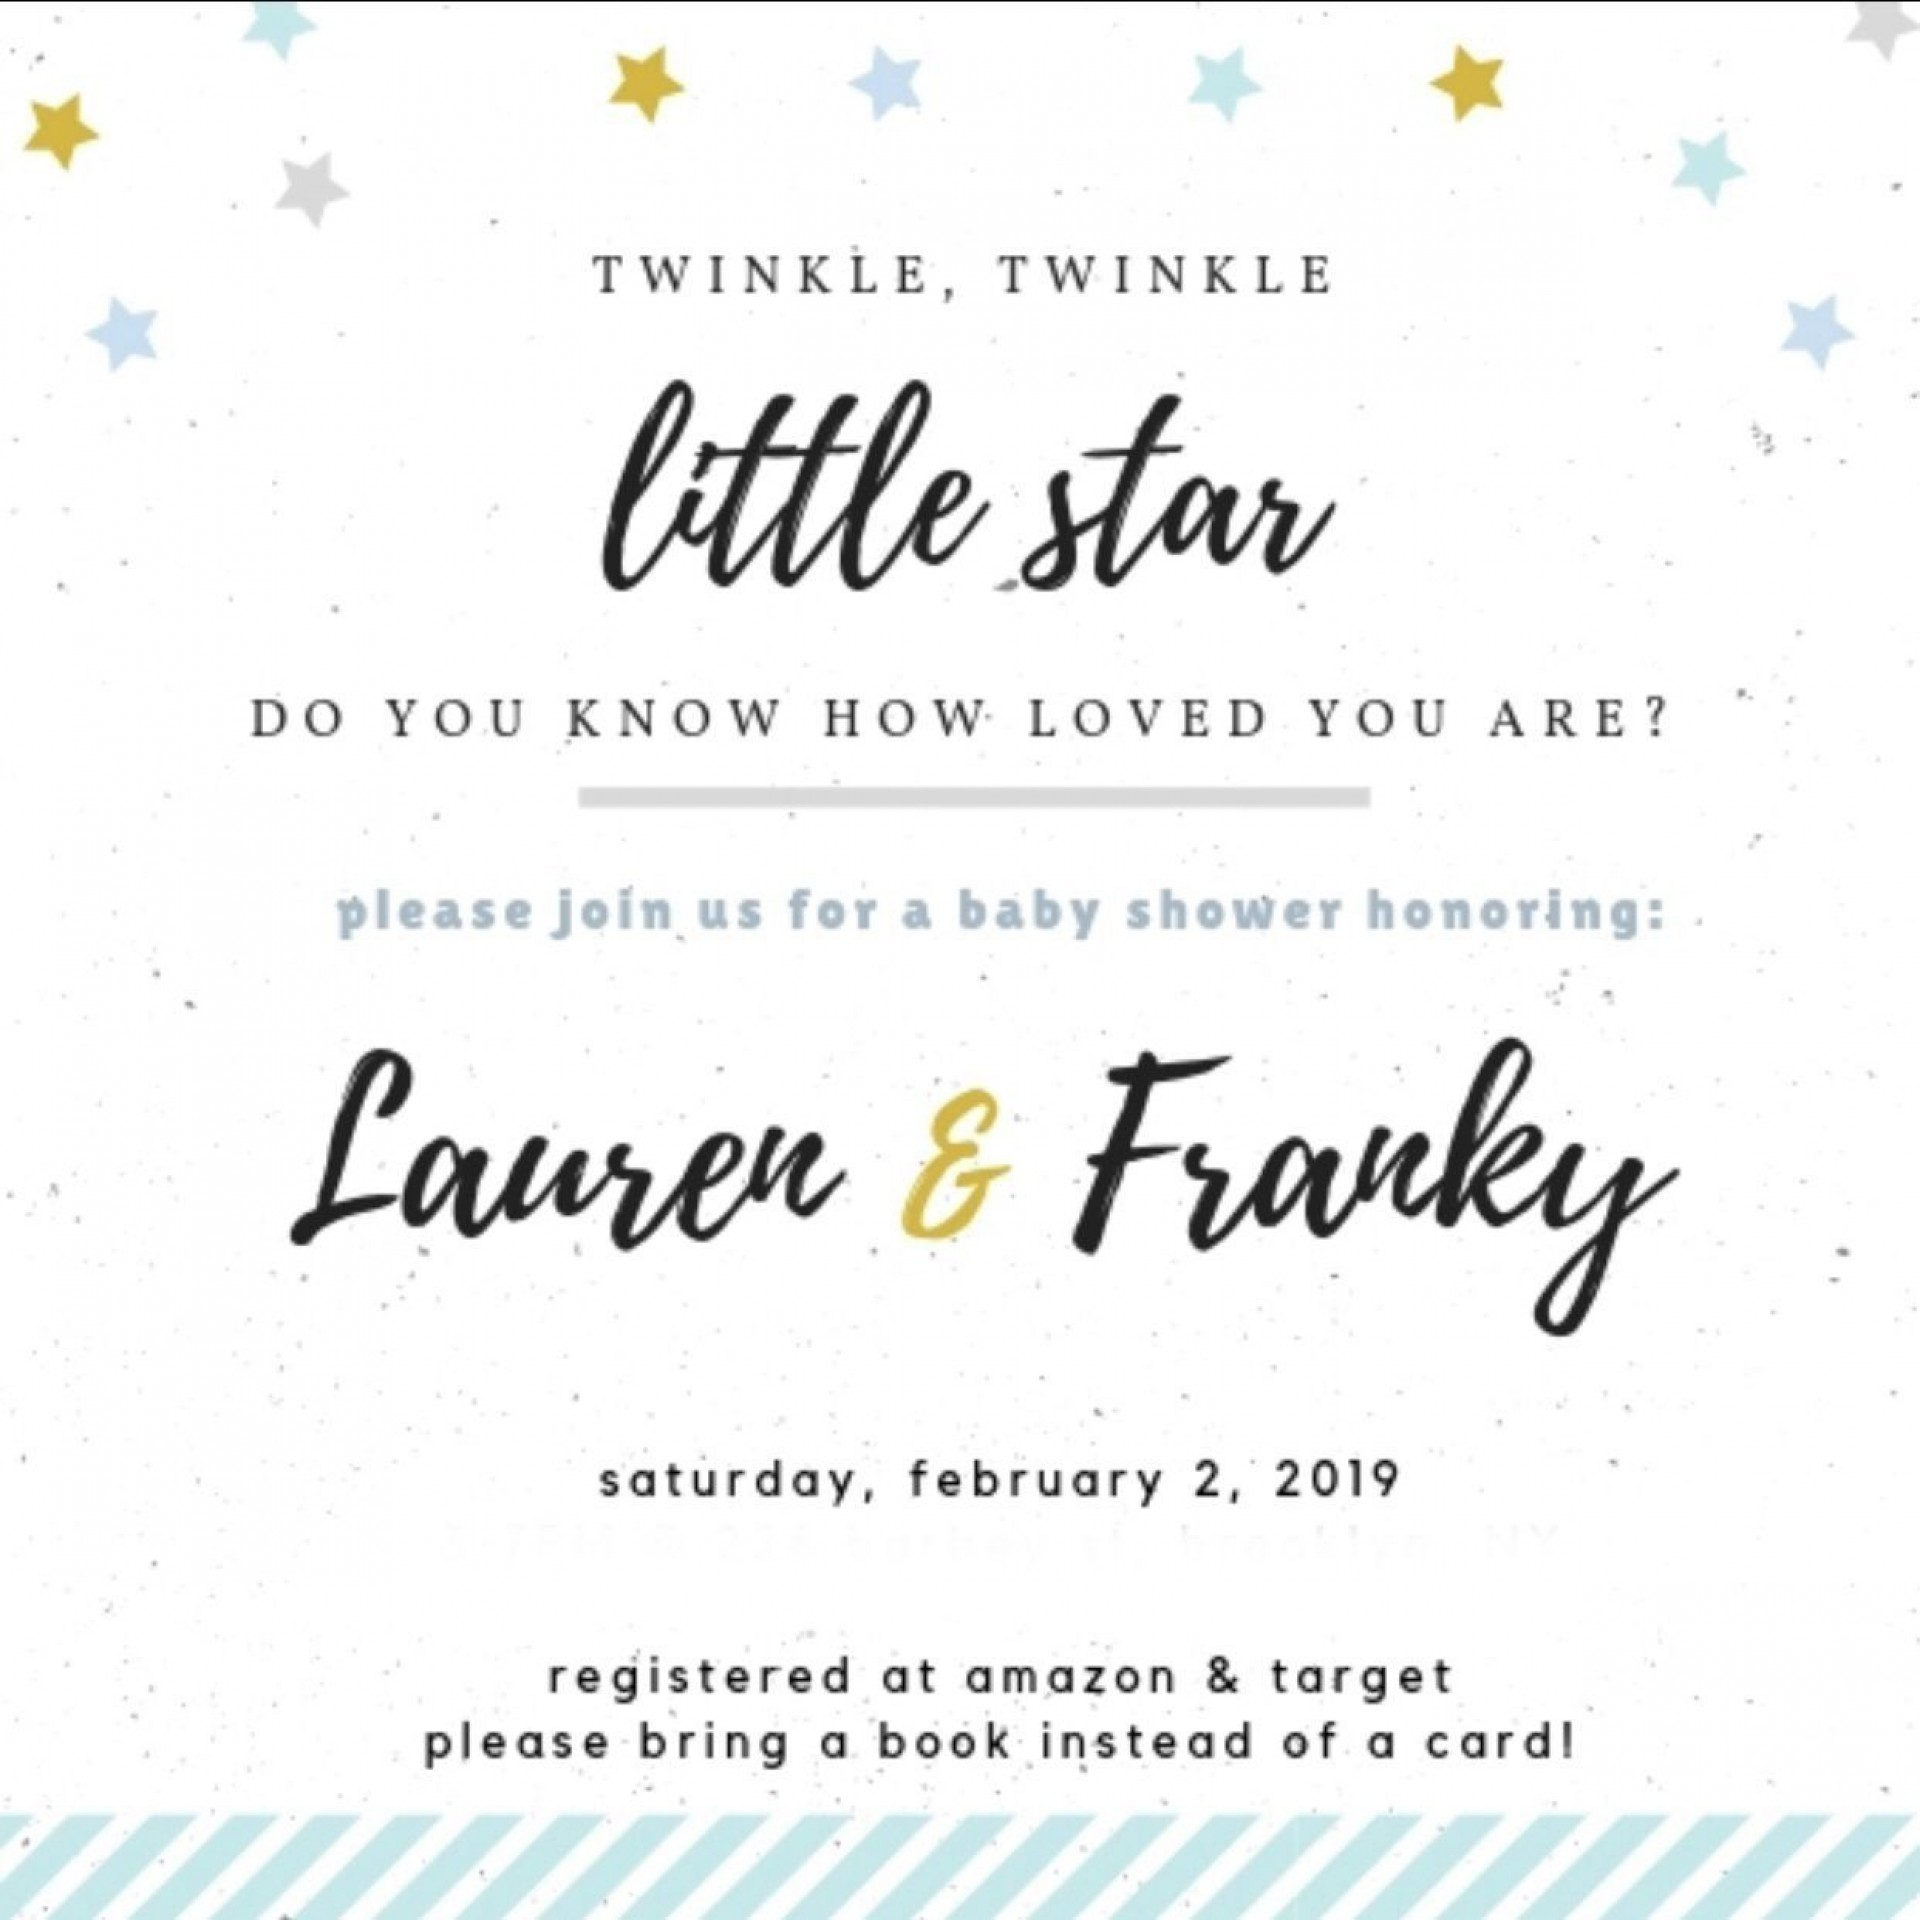 006 Wonderful Baby Shower Invitation Wording Example Highest Clarity  Examples Invite Coed Idea For Boy1920